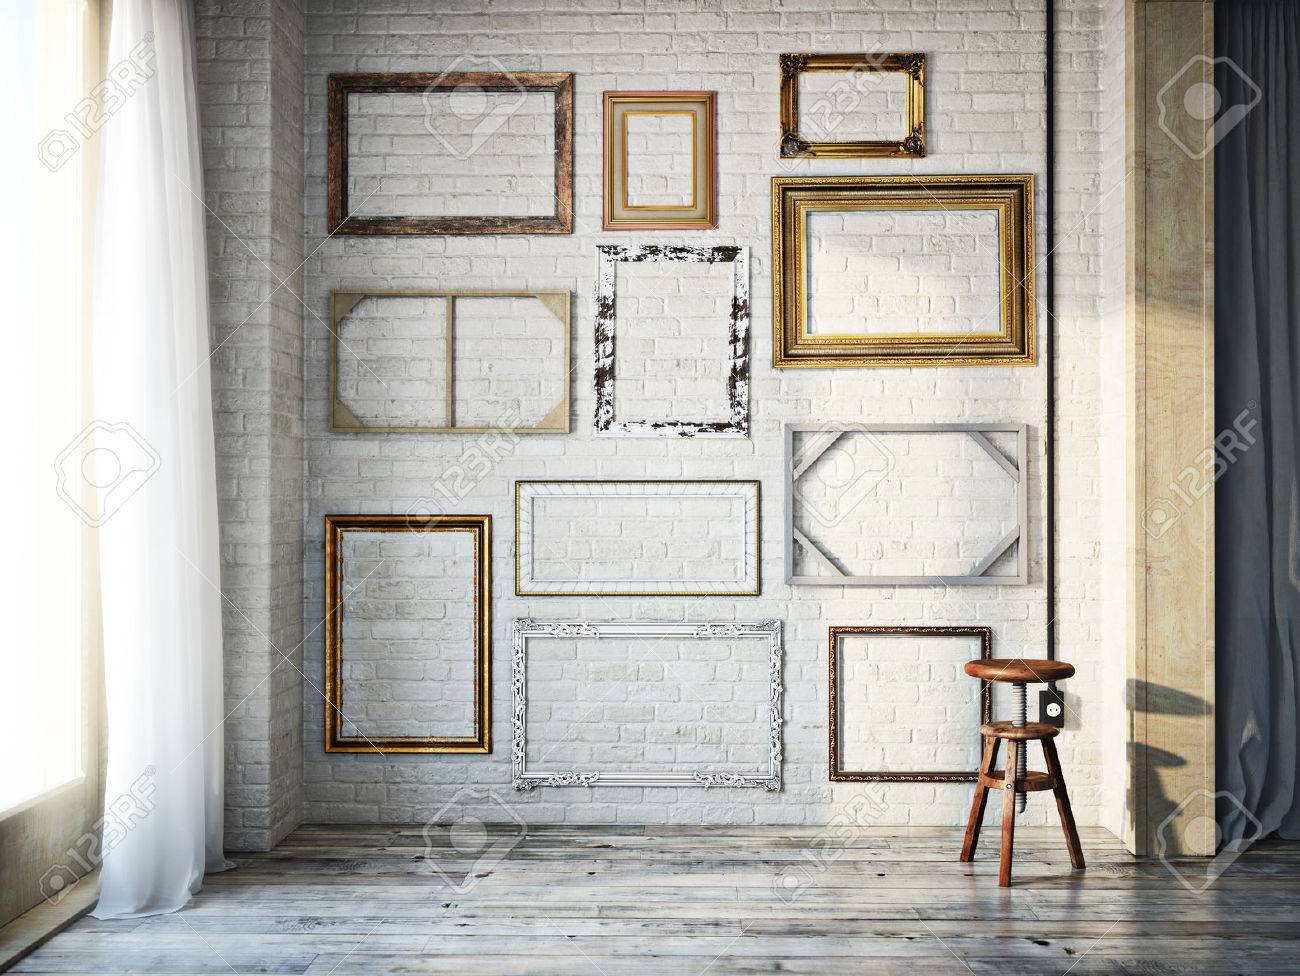 Abstract Interior Of Assorted Classic Empty Picture Frames Against A White  Brick Wall With Rustic Hardwood